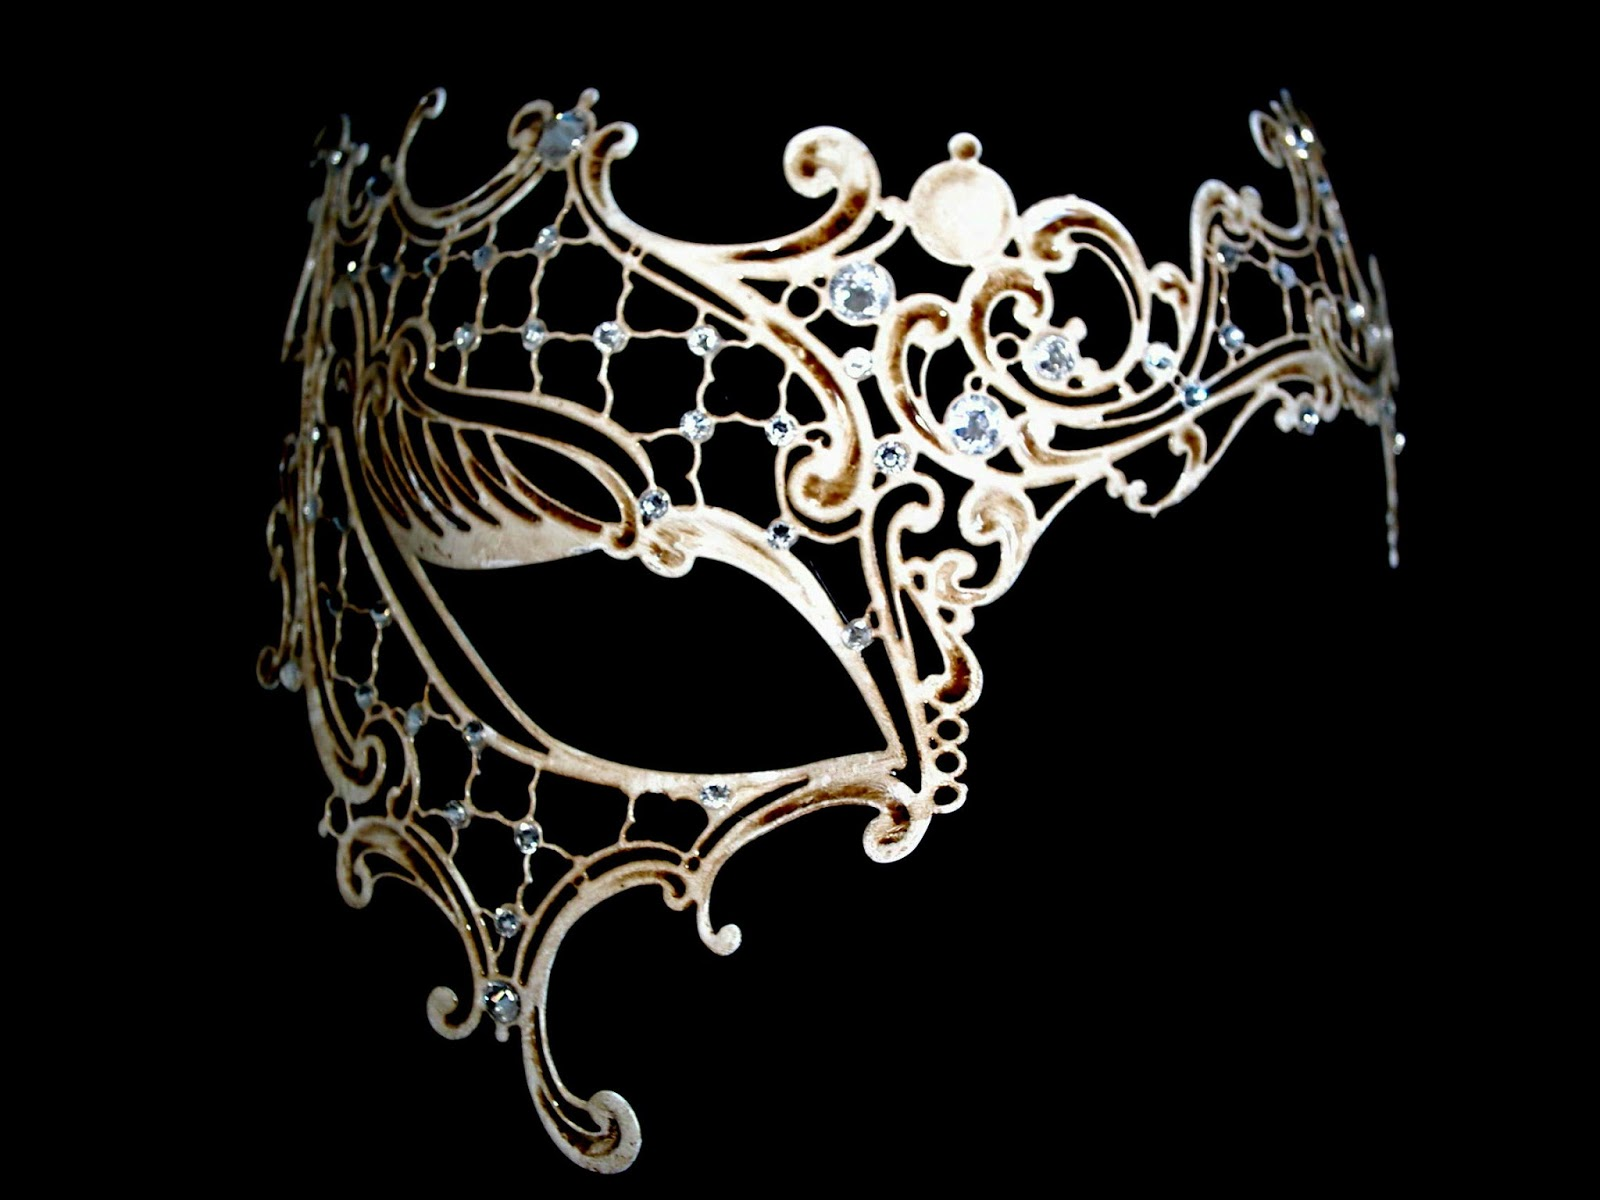 http://www.simplymasquerade.co.uk/masqueradeshop/prod_152311-Occhialino-Venetian-Filigree-Masquerade-Mask-Antique-White.html